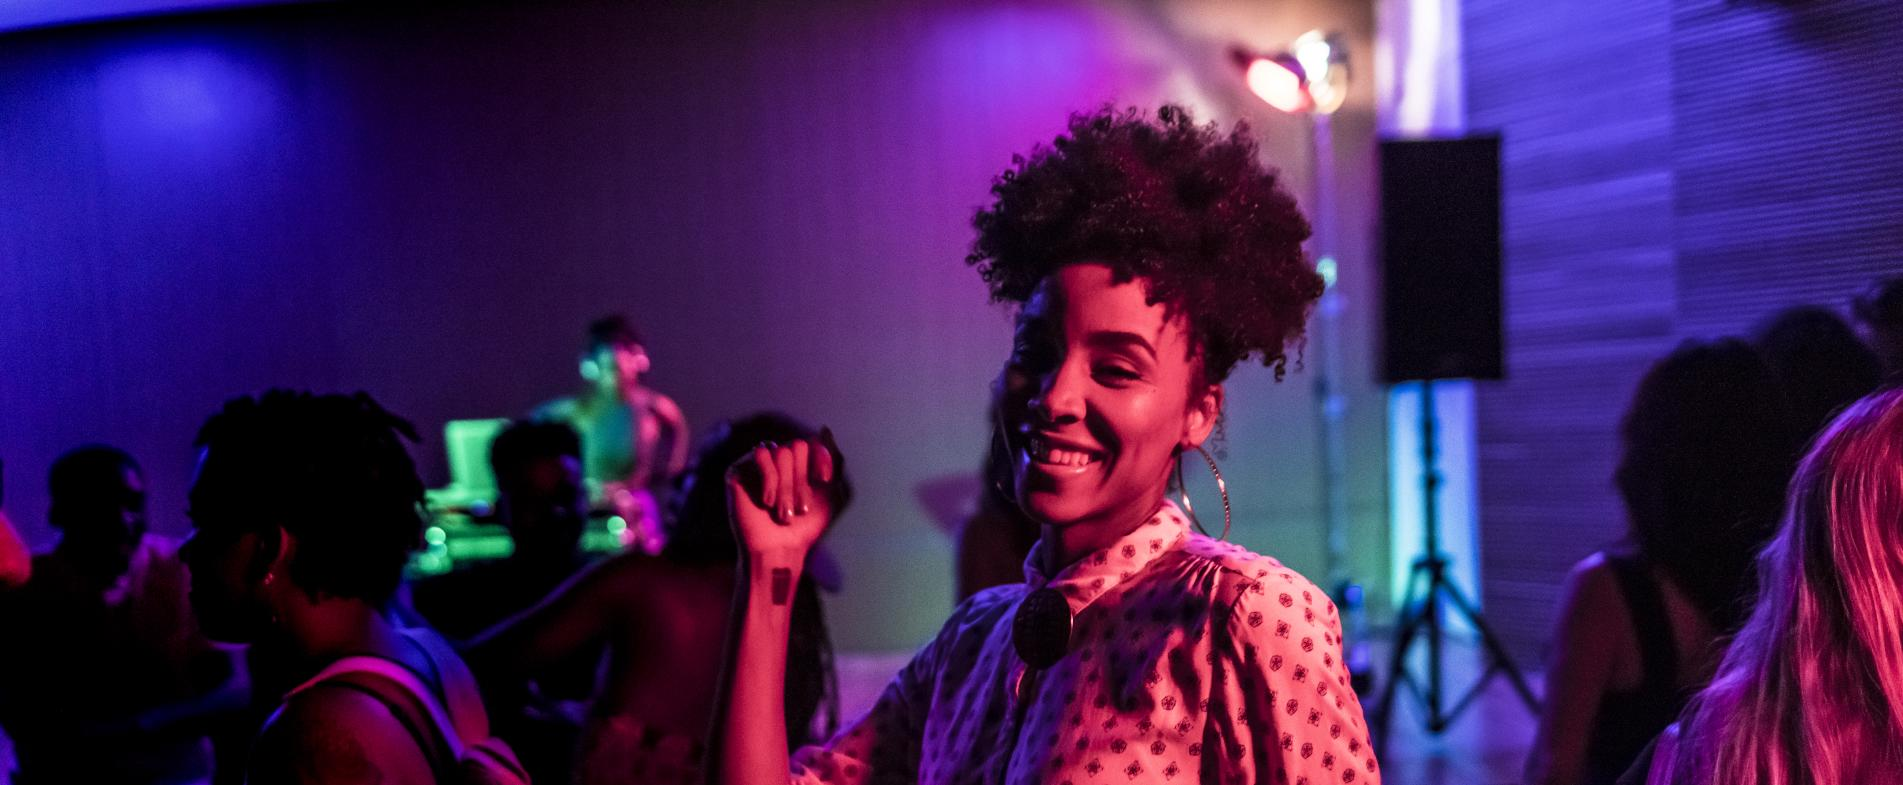 Smiling woman dancing at a night club in Grand Rapids